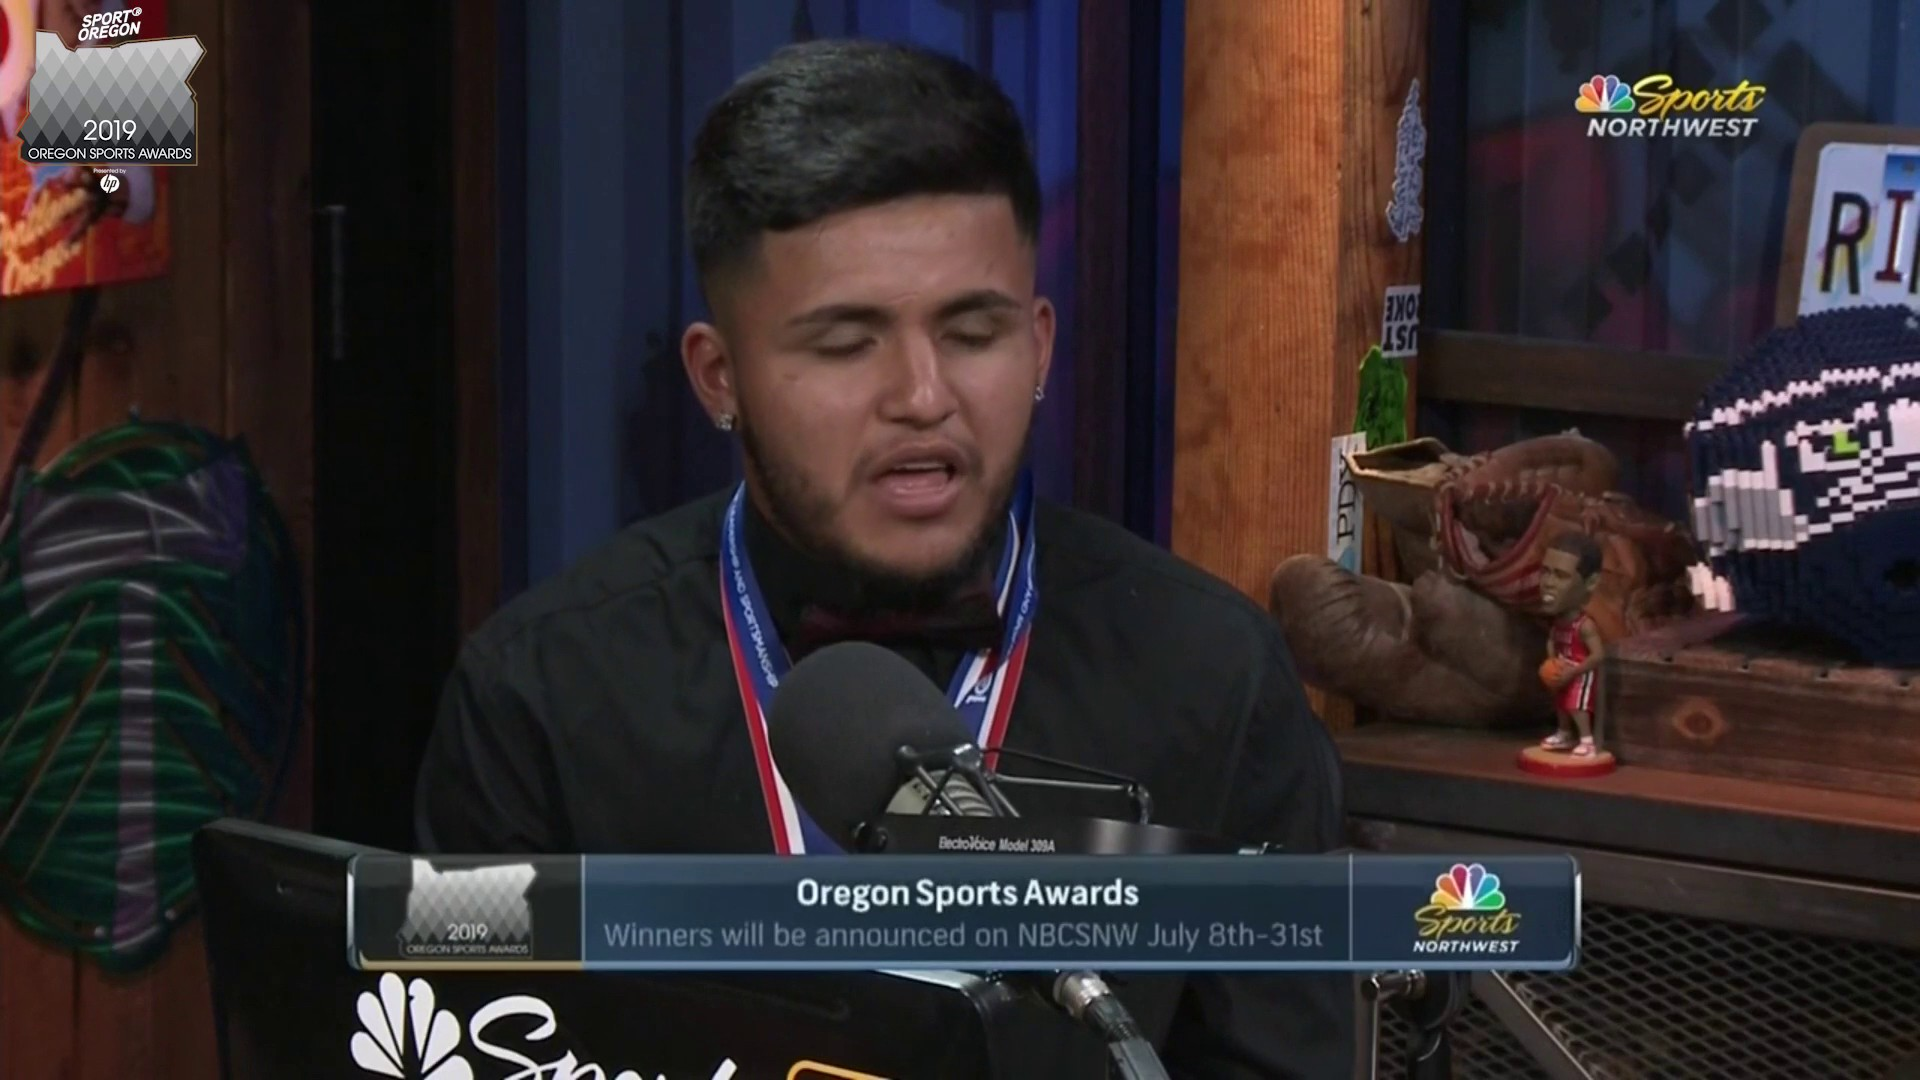 """Chuy"" wins 2019 Prep Boys Soccer Player of the Year"